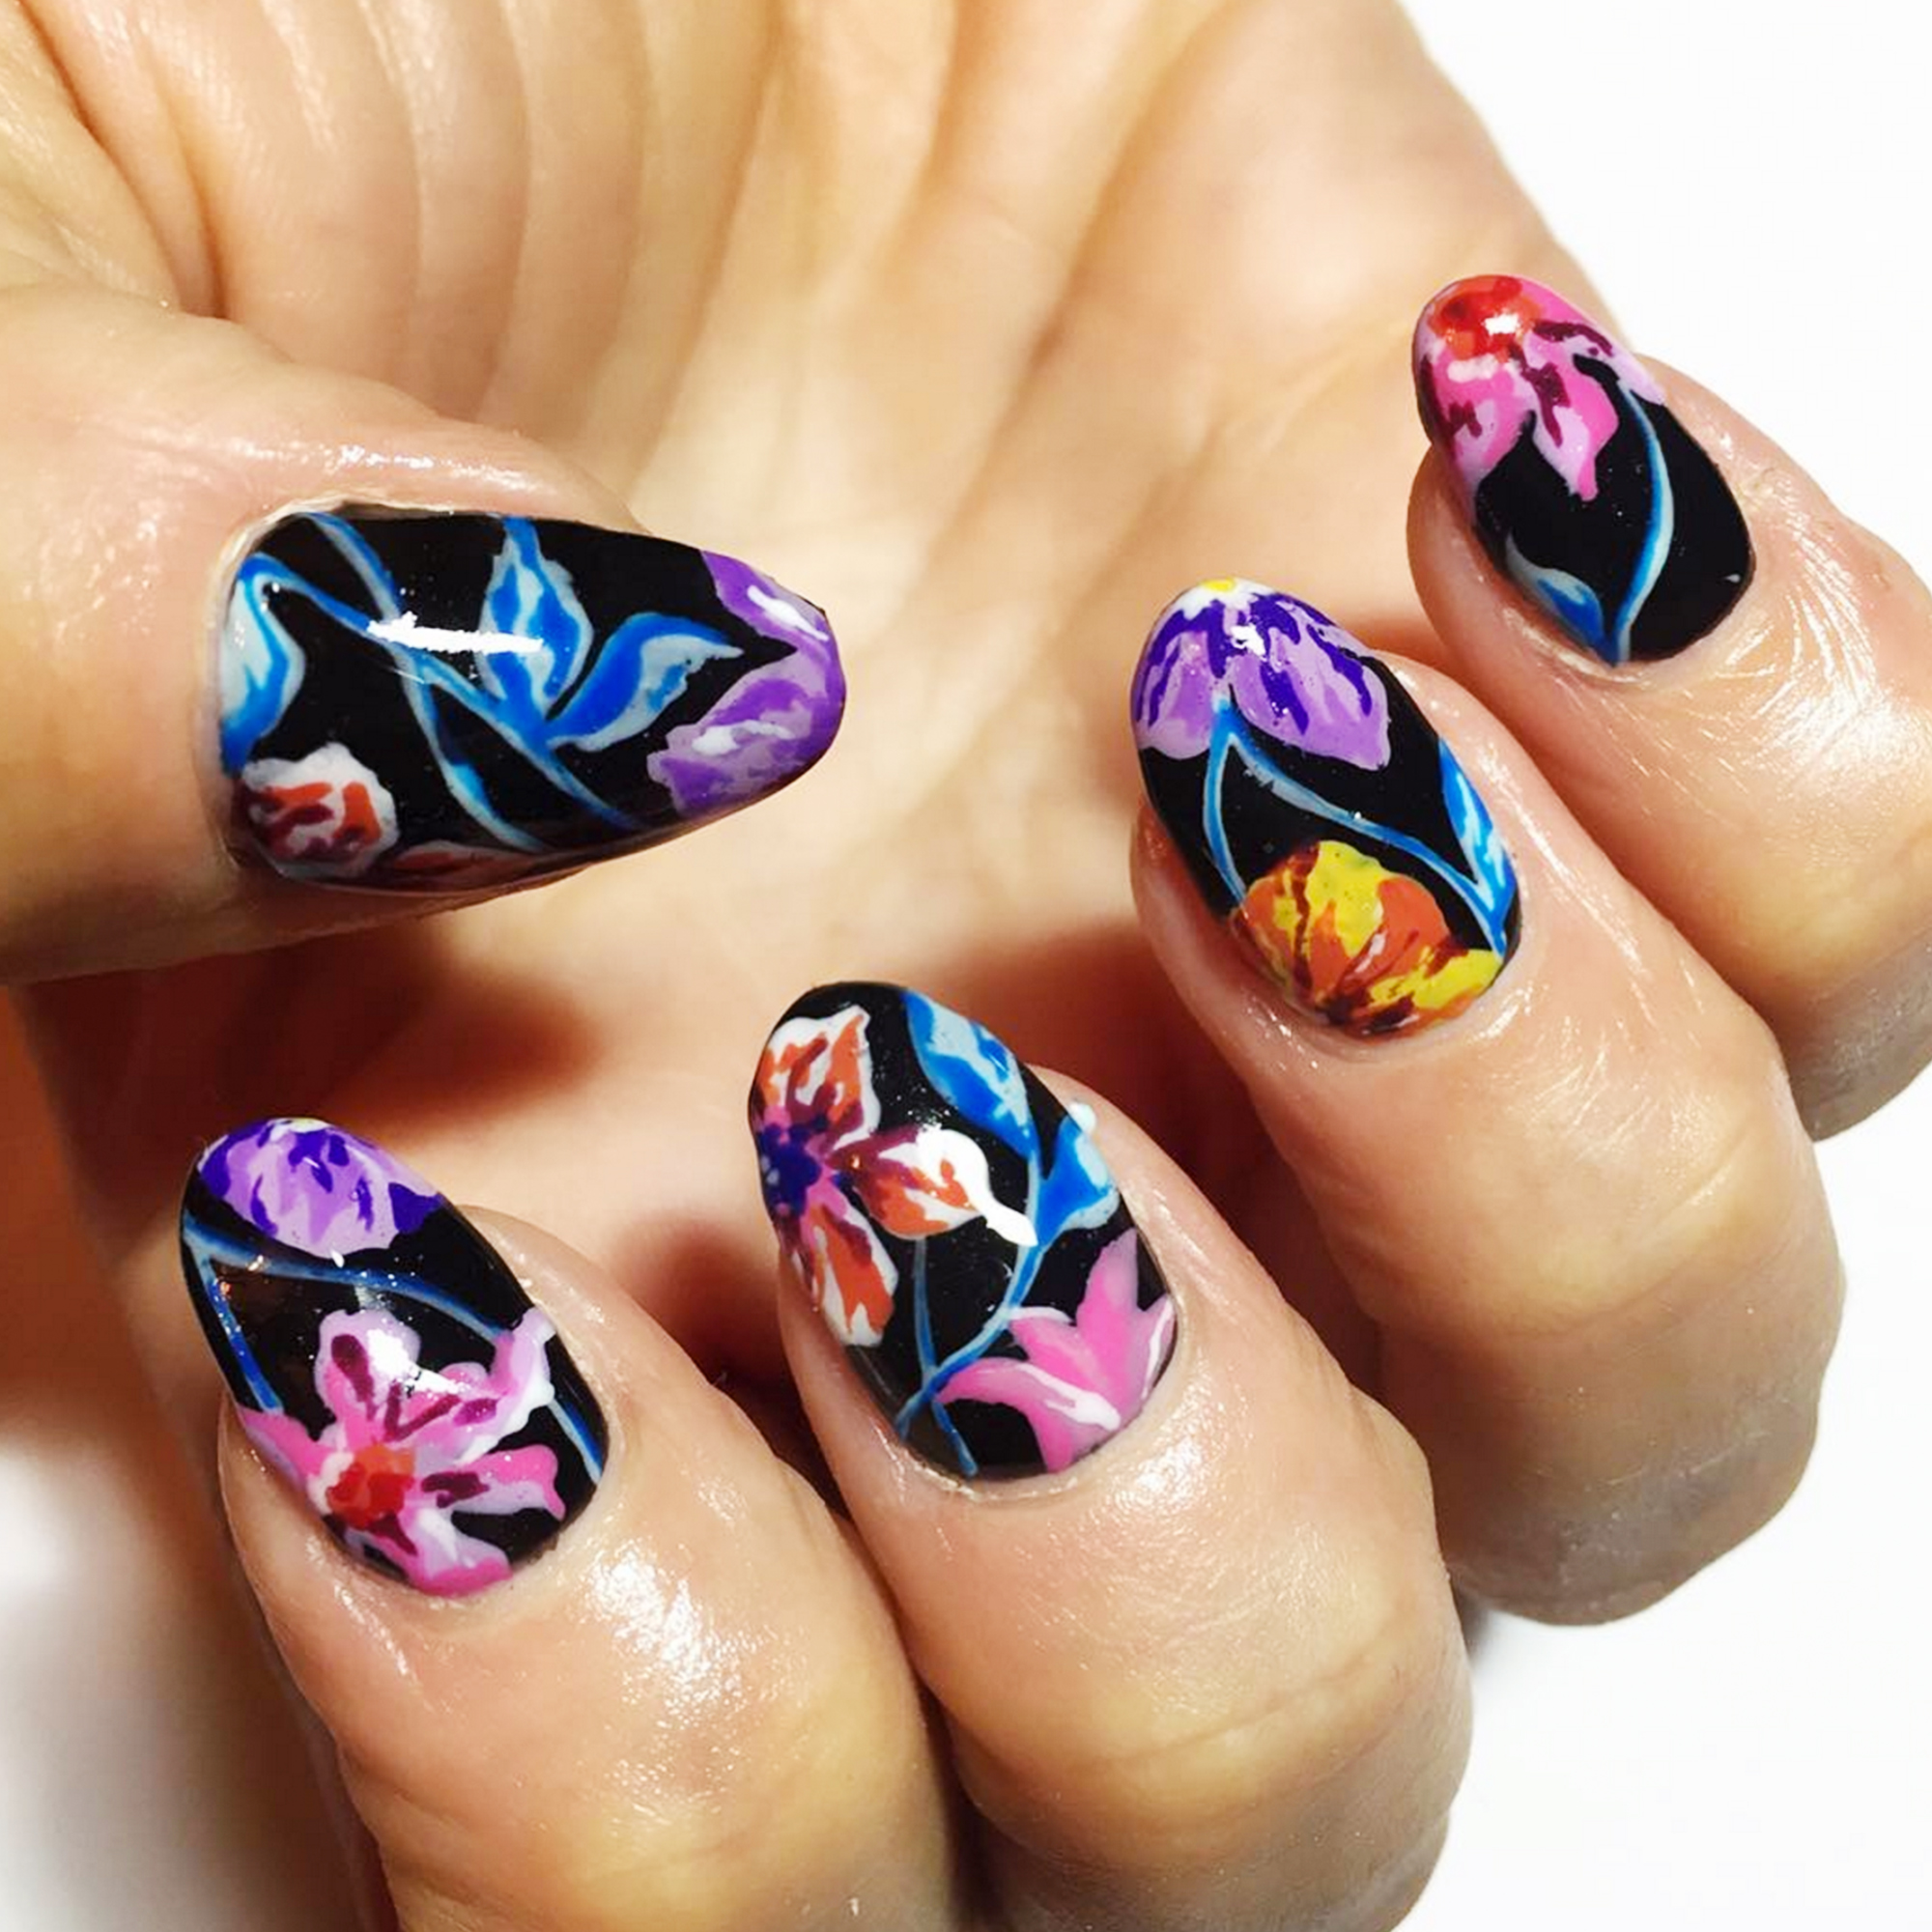 Nail Art Ideas: 12 Cool Summer Nail Art Designs